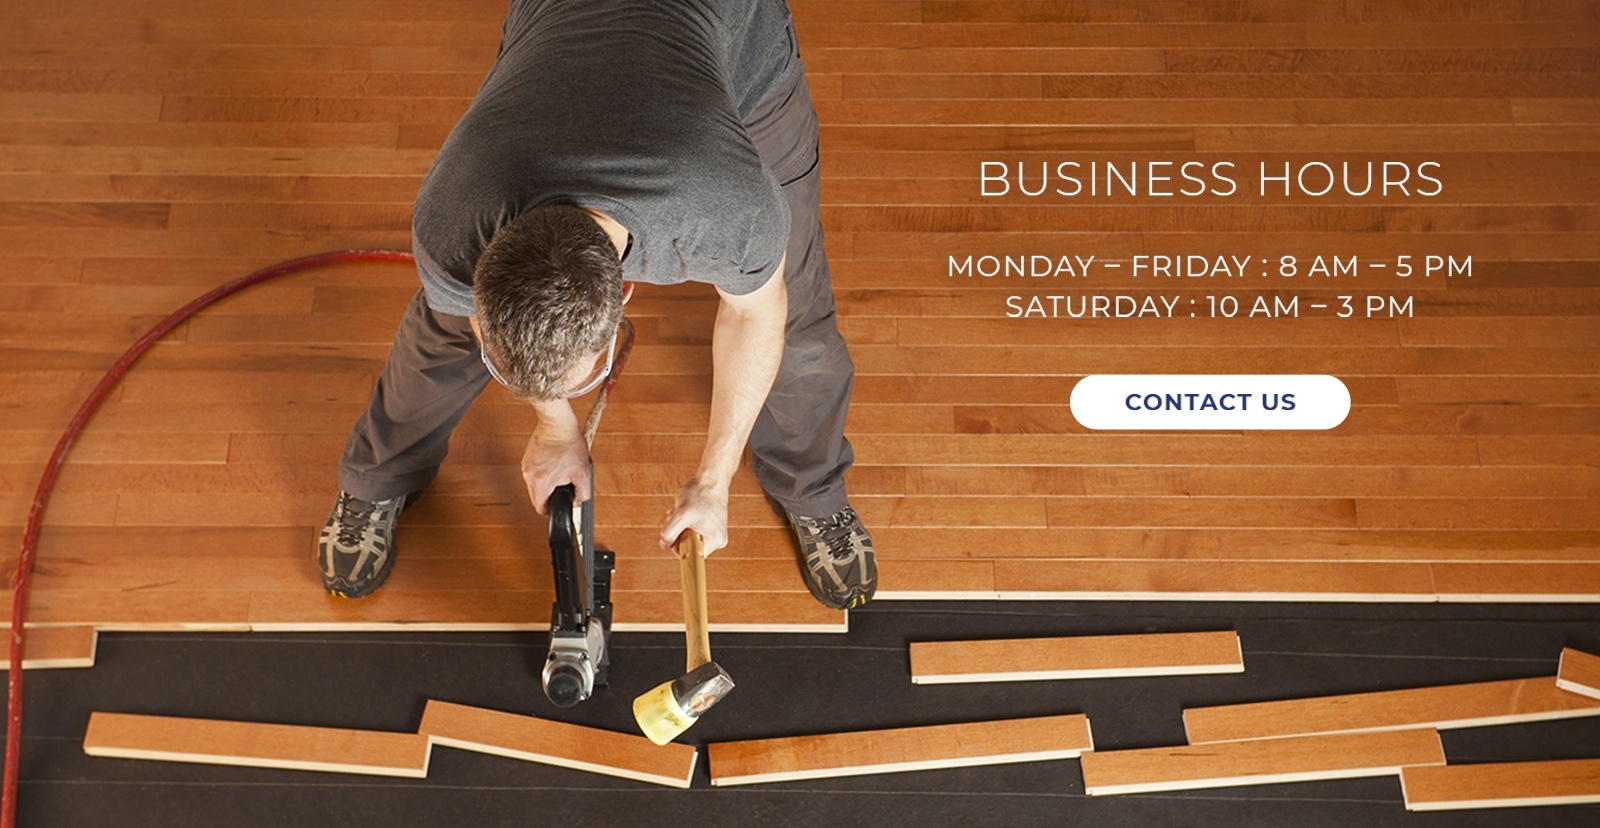 Flooring Services San Francisco